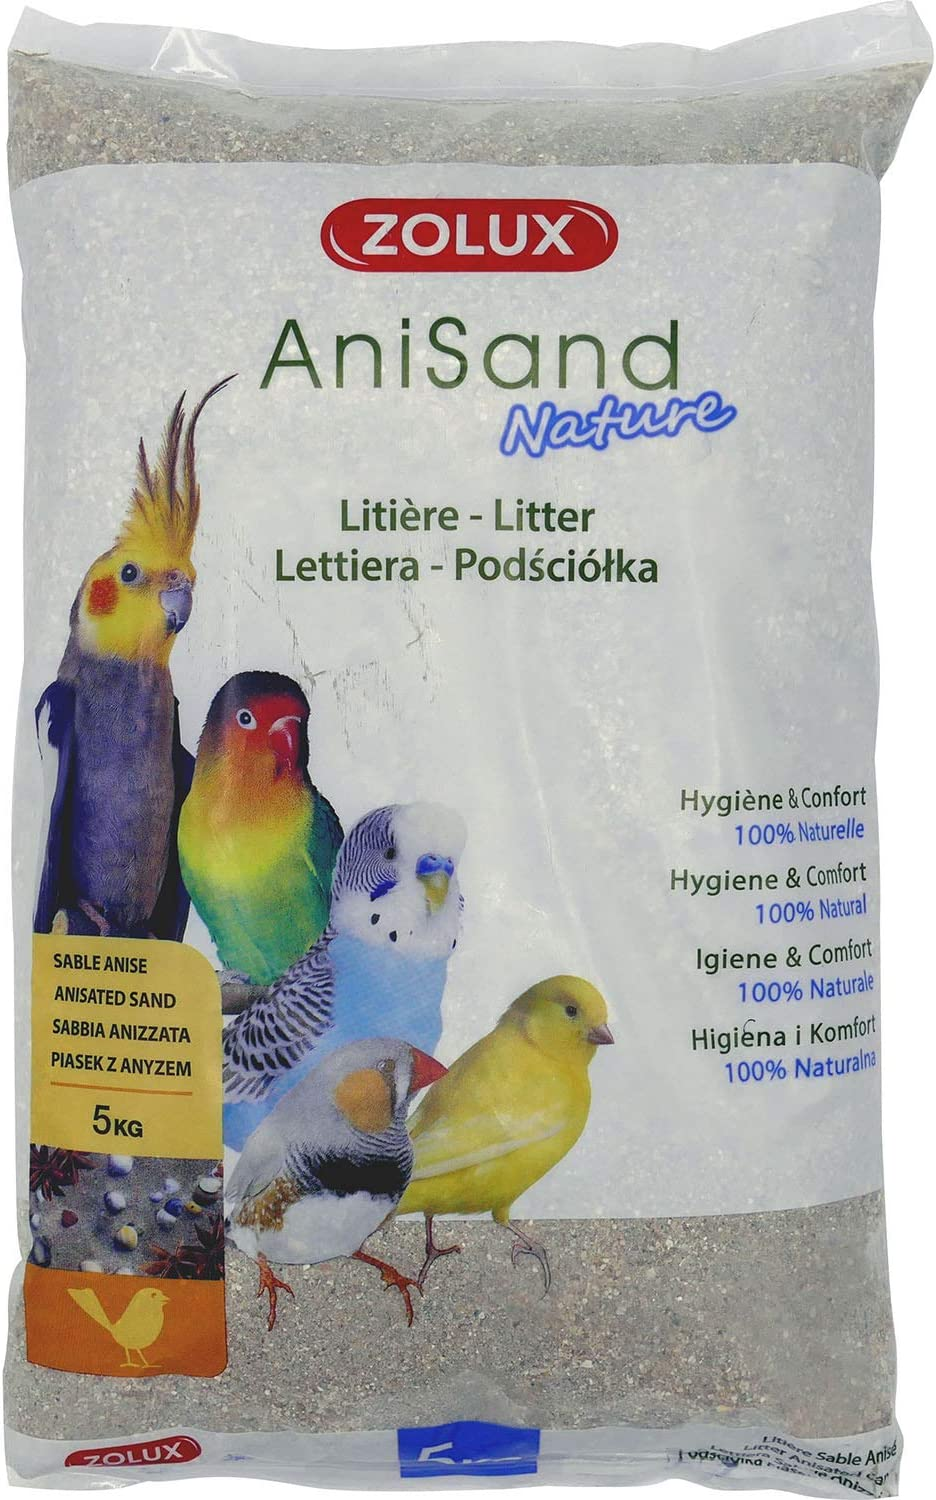 Zolux ANISAND Nature 5KG